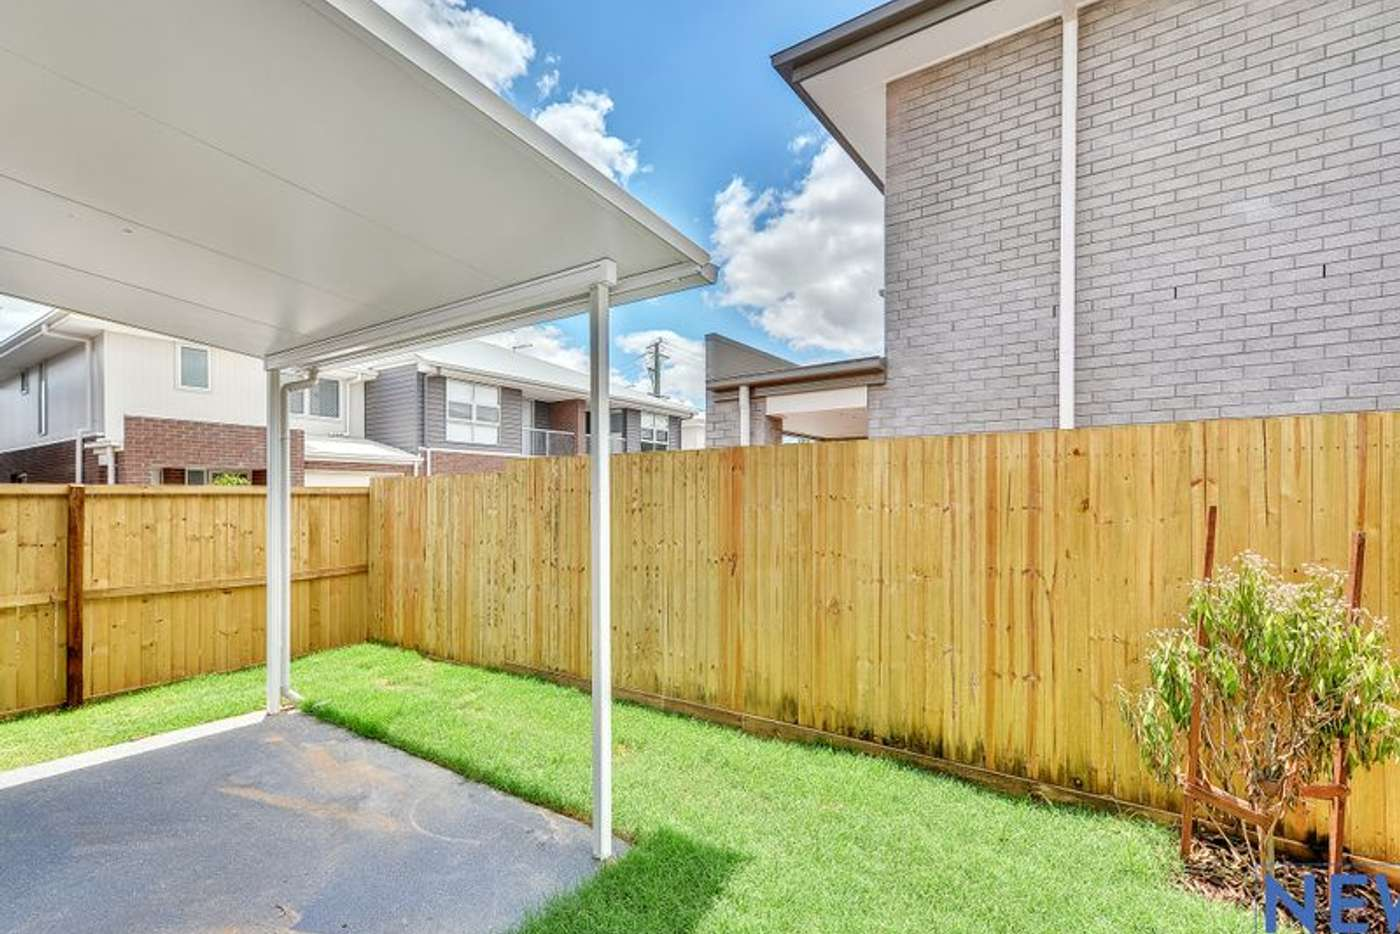 Main view of Homely townhouse listing, 72/15 Waratah Way, Morayfield QLD 4506